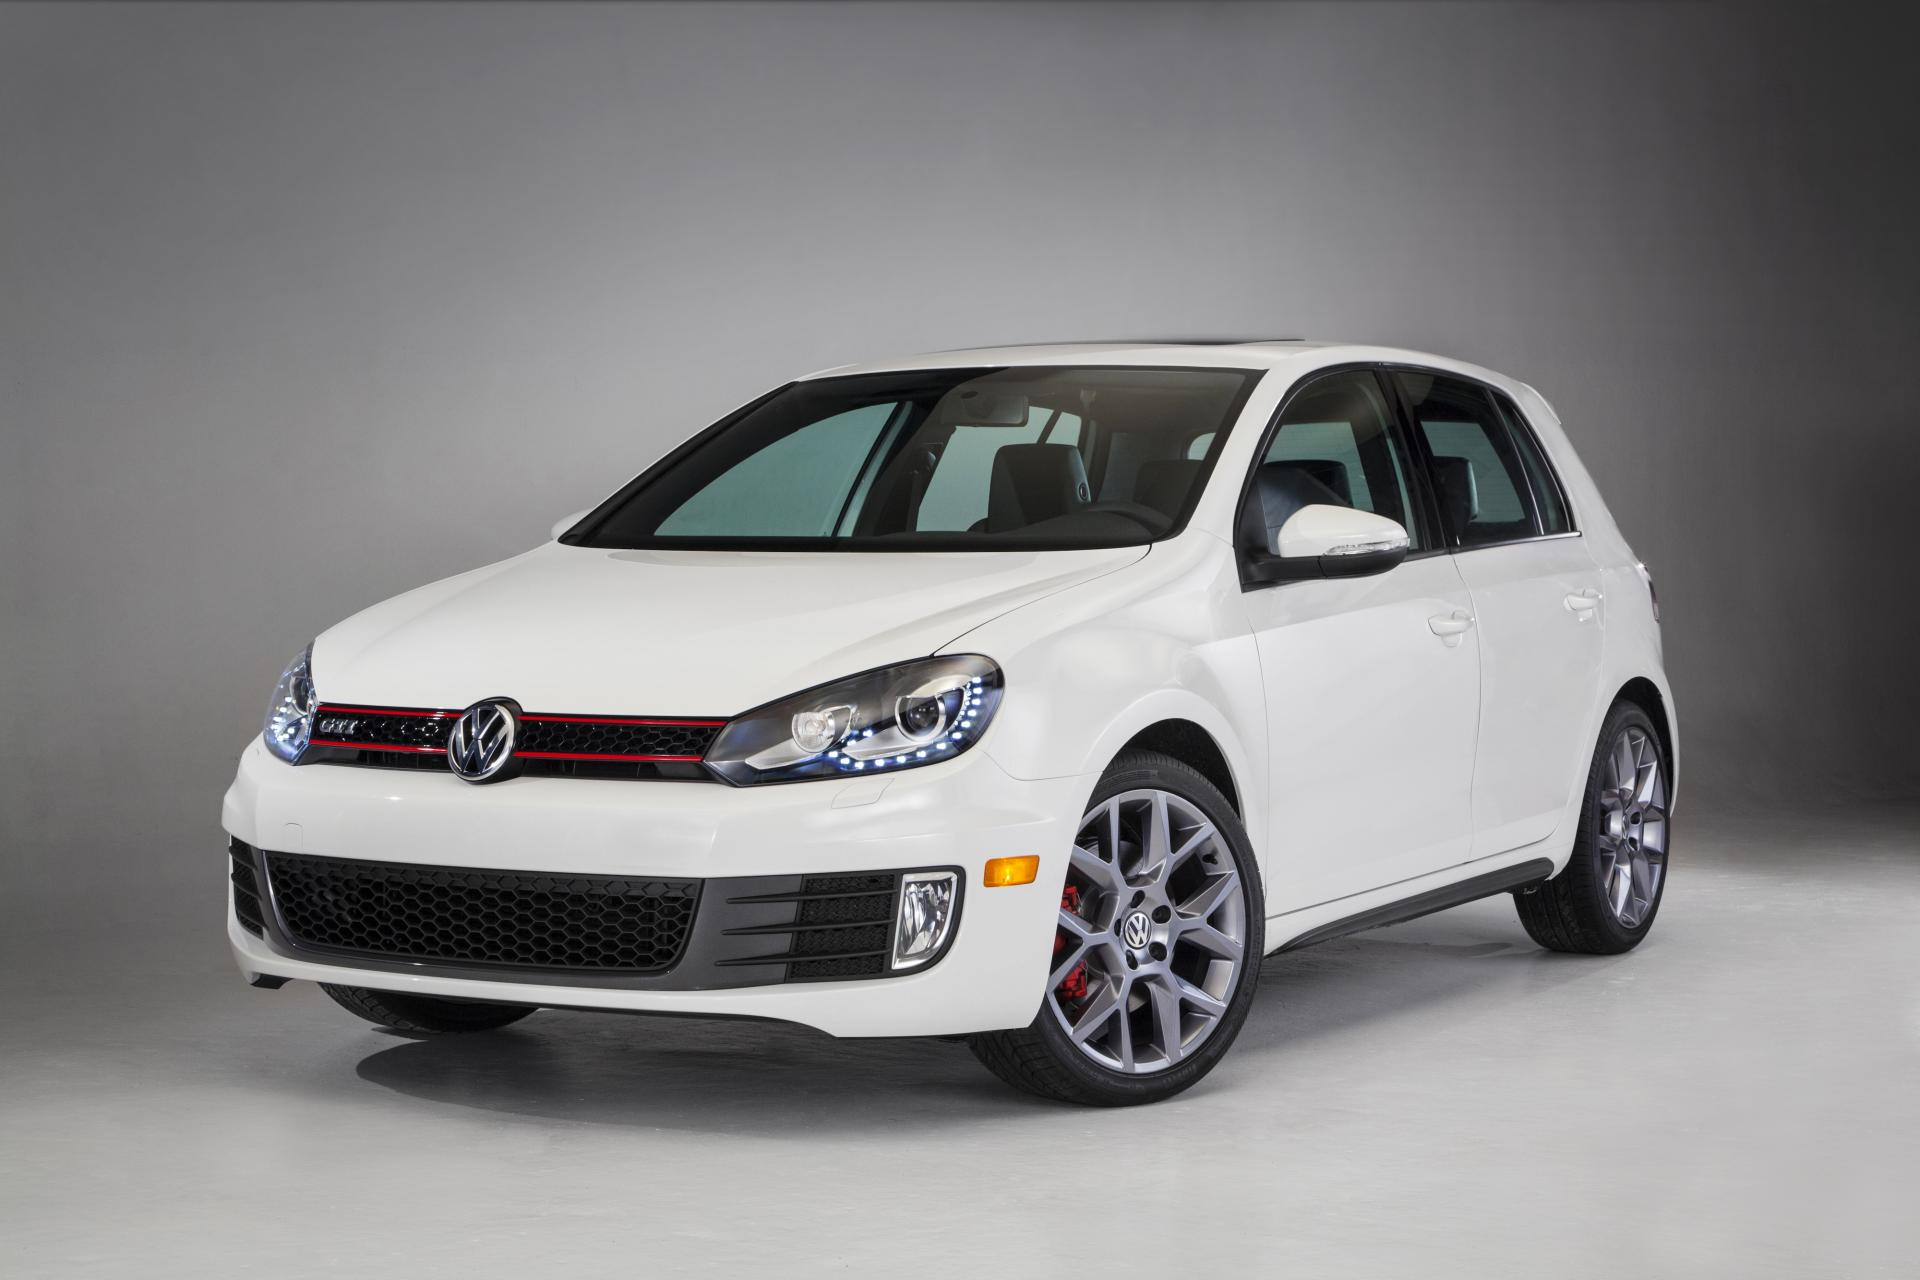 2014 volkswagen gti. Black Bedroom Furniture Sets. Home Design Ideas